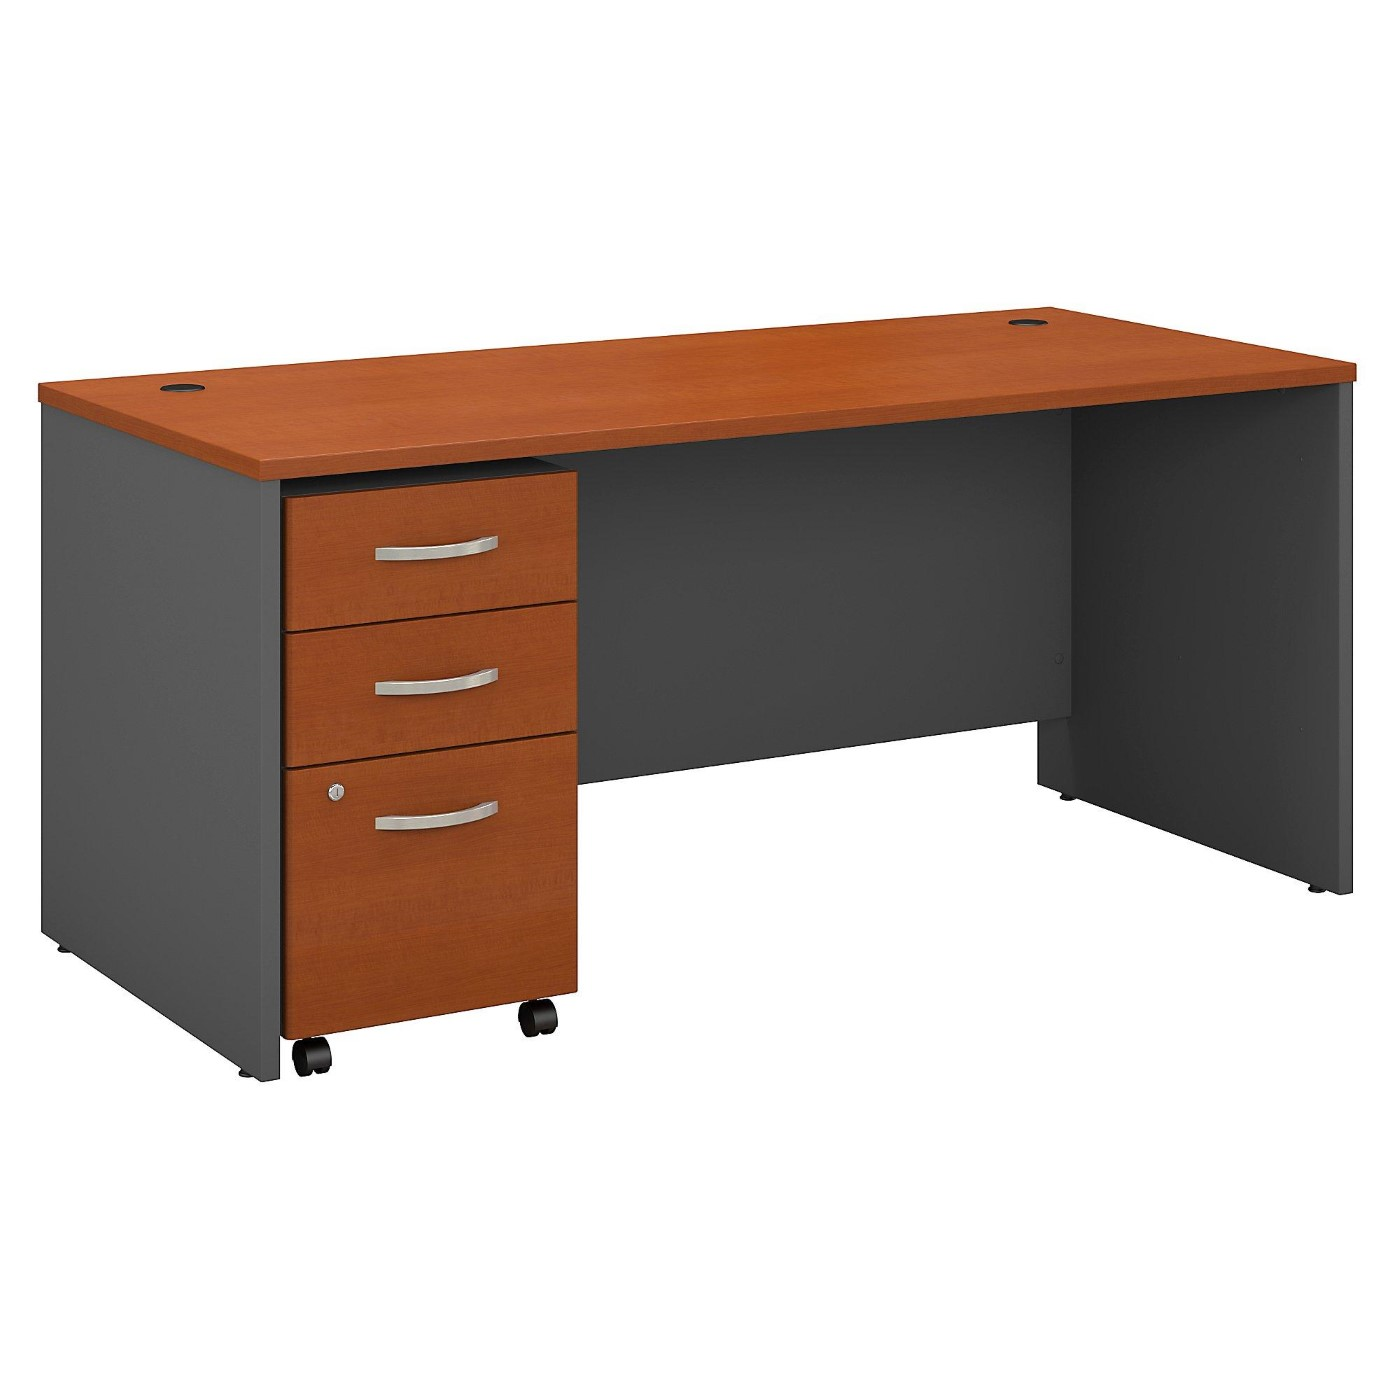 BUSH BUSINESS FURNITURE SERIES C 66W X 30D OFFICE DESK WITH MOBILE FILE CABINET. FREE SHIPPING  VIDEO BELOW.